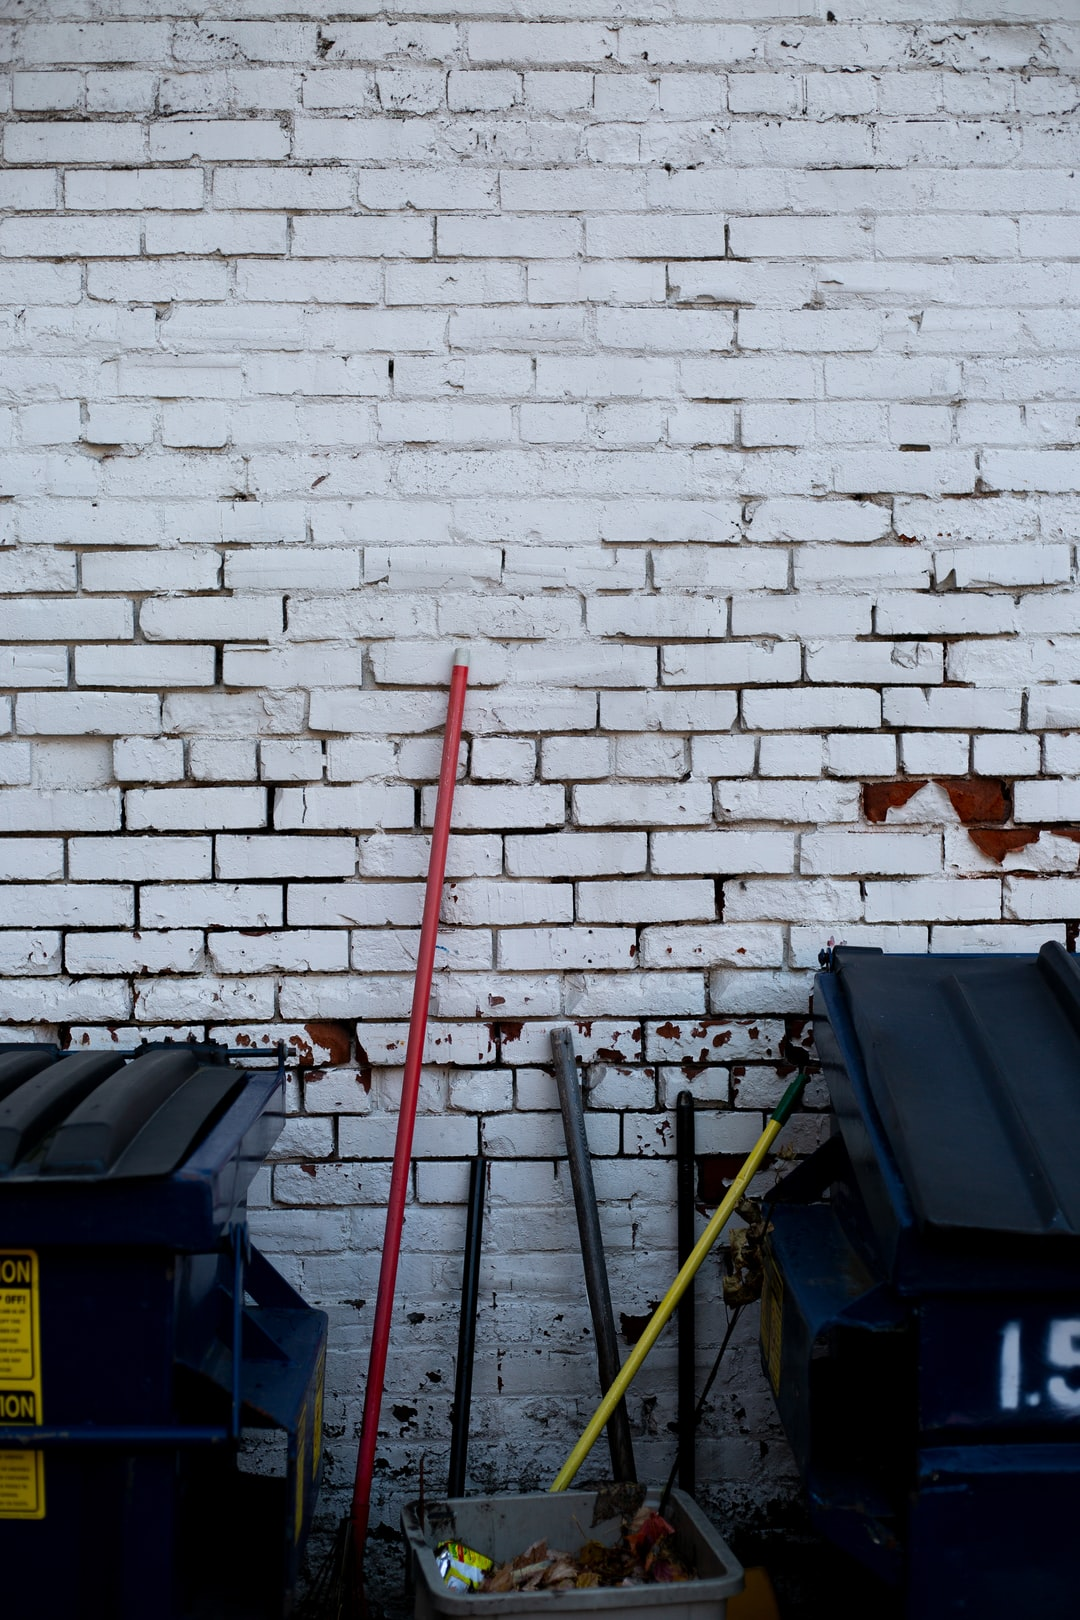 cleaning supplies against a wall